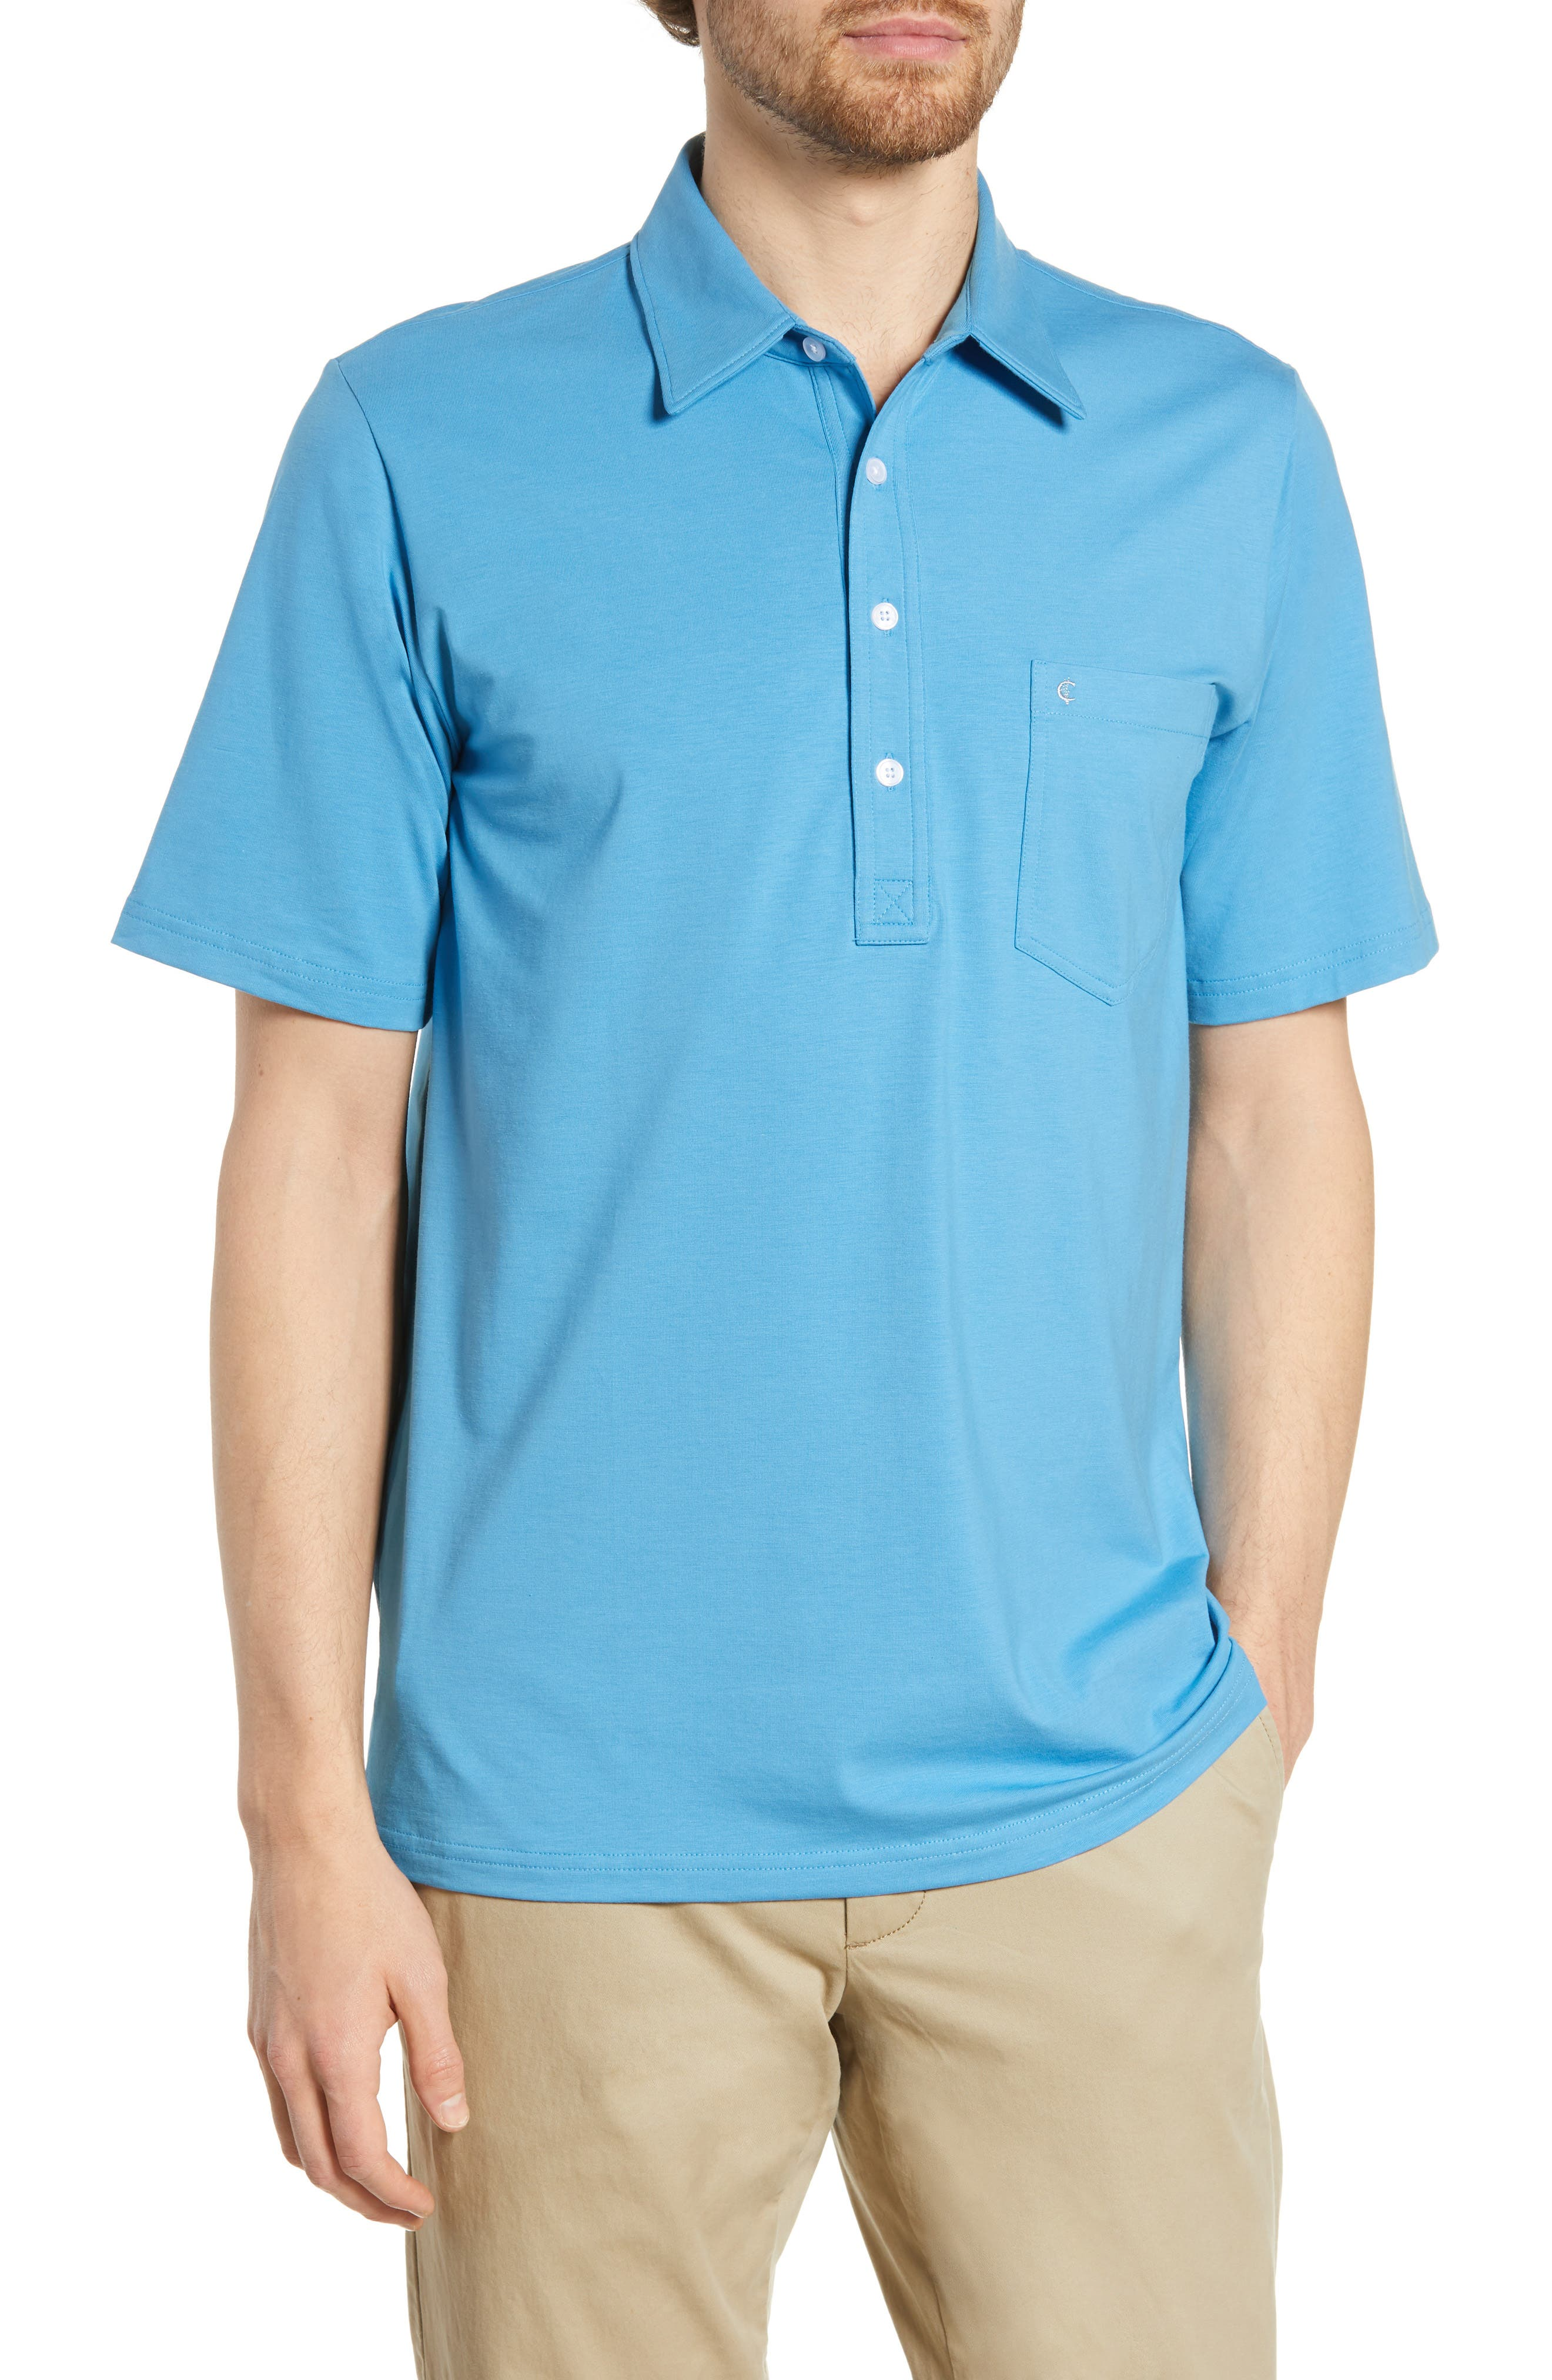 Criquet Players Stretch Jersey Polo, Blue